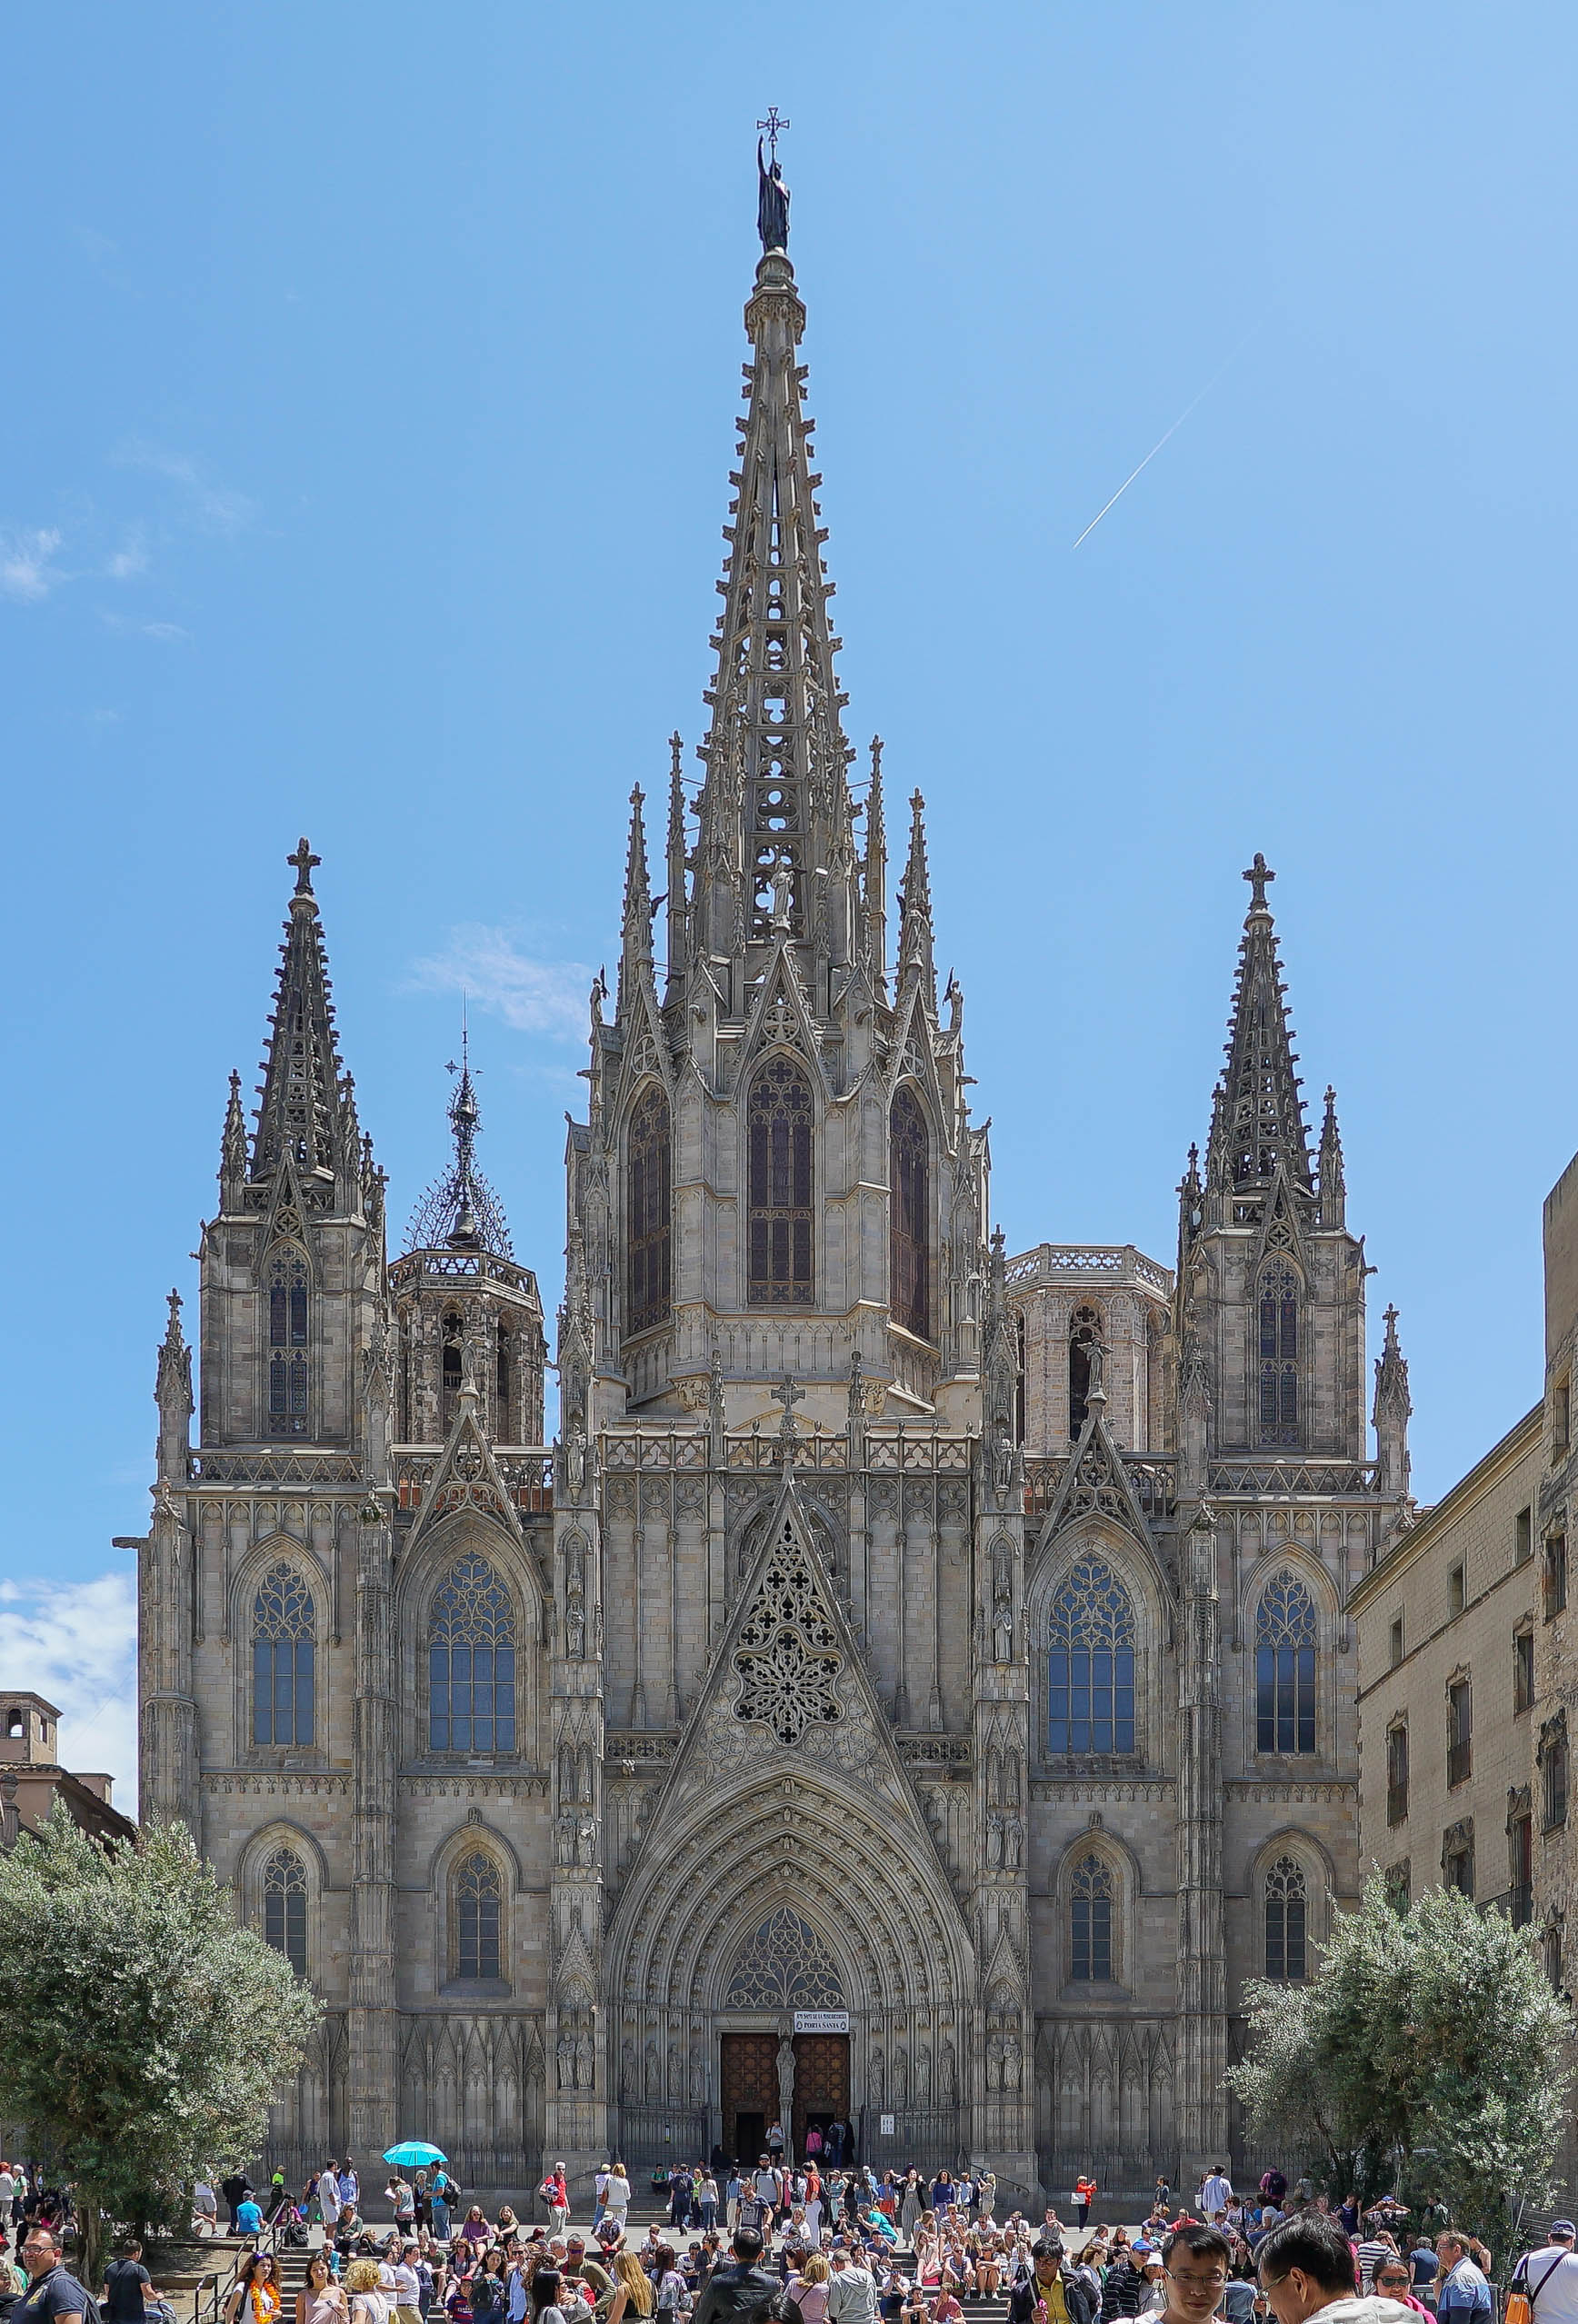 28786720762 4a6d3fe170 o Barcelonas districts, this month: Gothic quarter